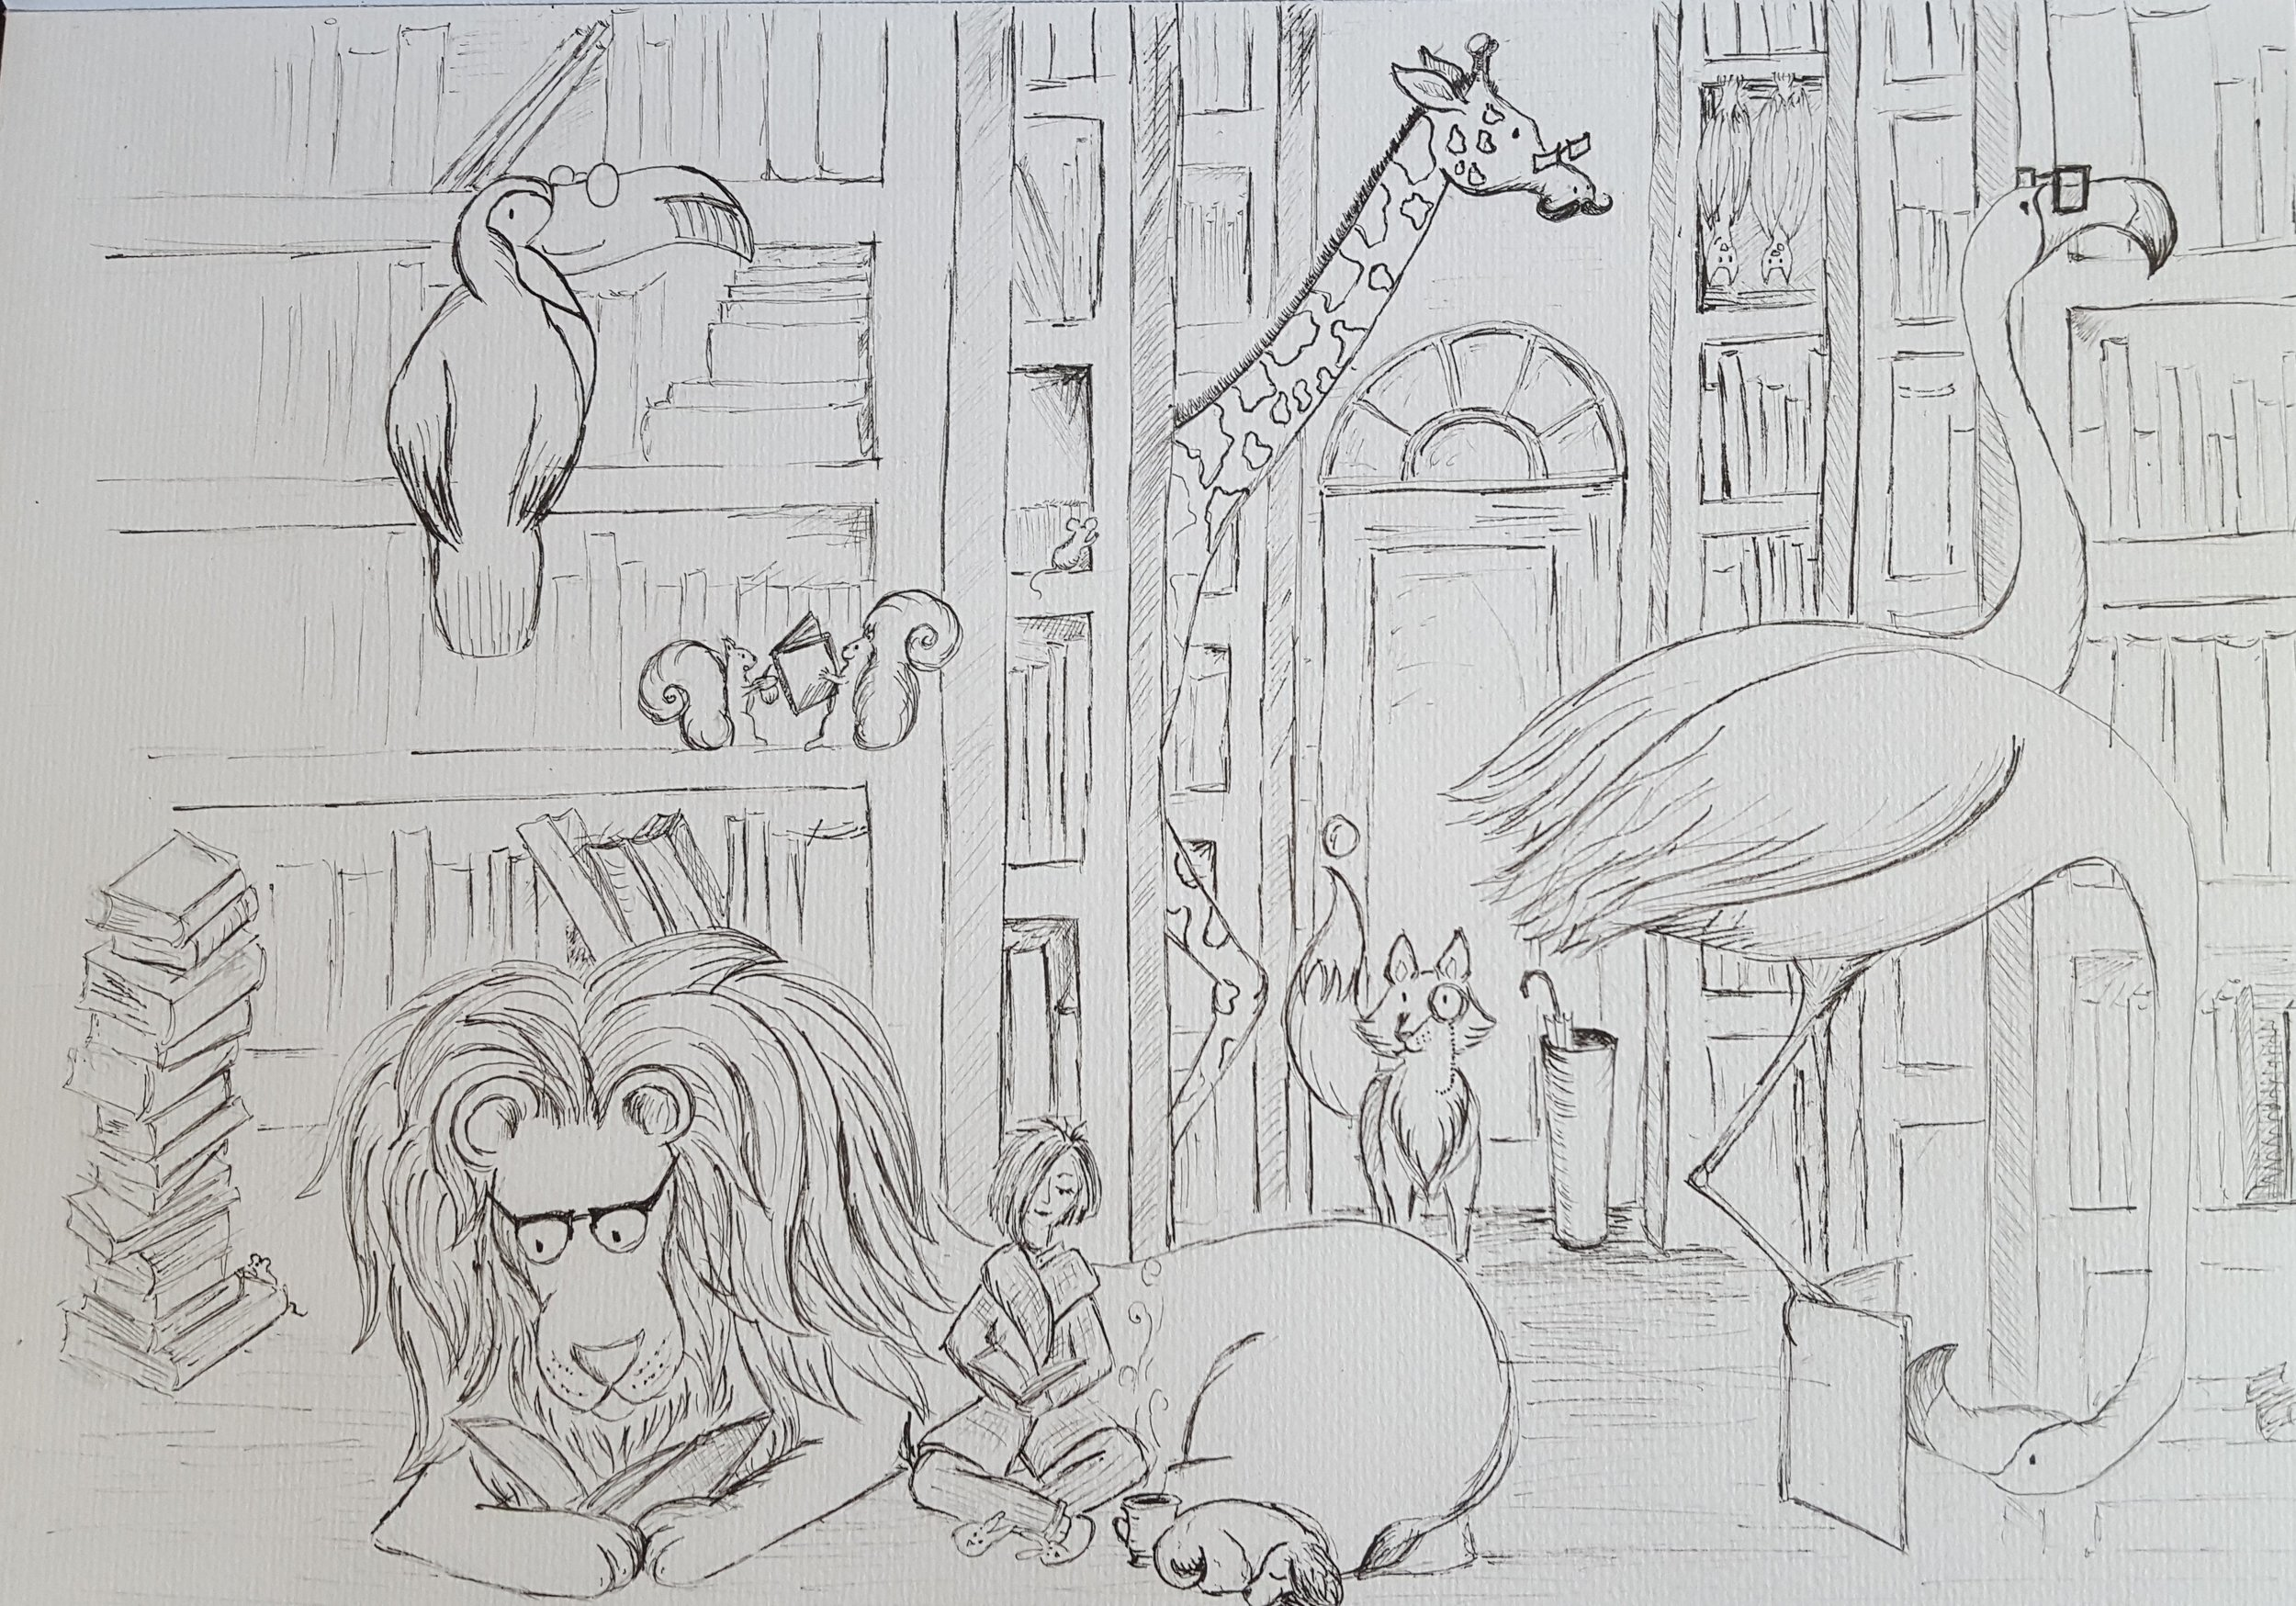 """The initial sketch for """"The Magical Bookshop"""". I was, and am, quite excited about this idea.There will be more to come following the same theme - Watch this space :-)"""